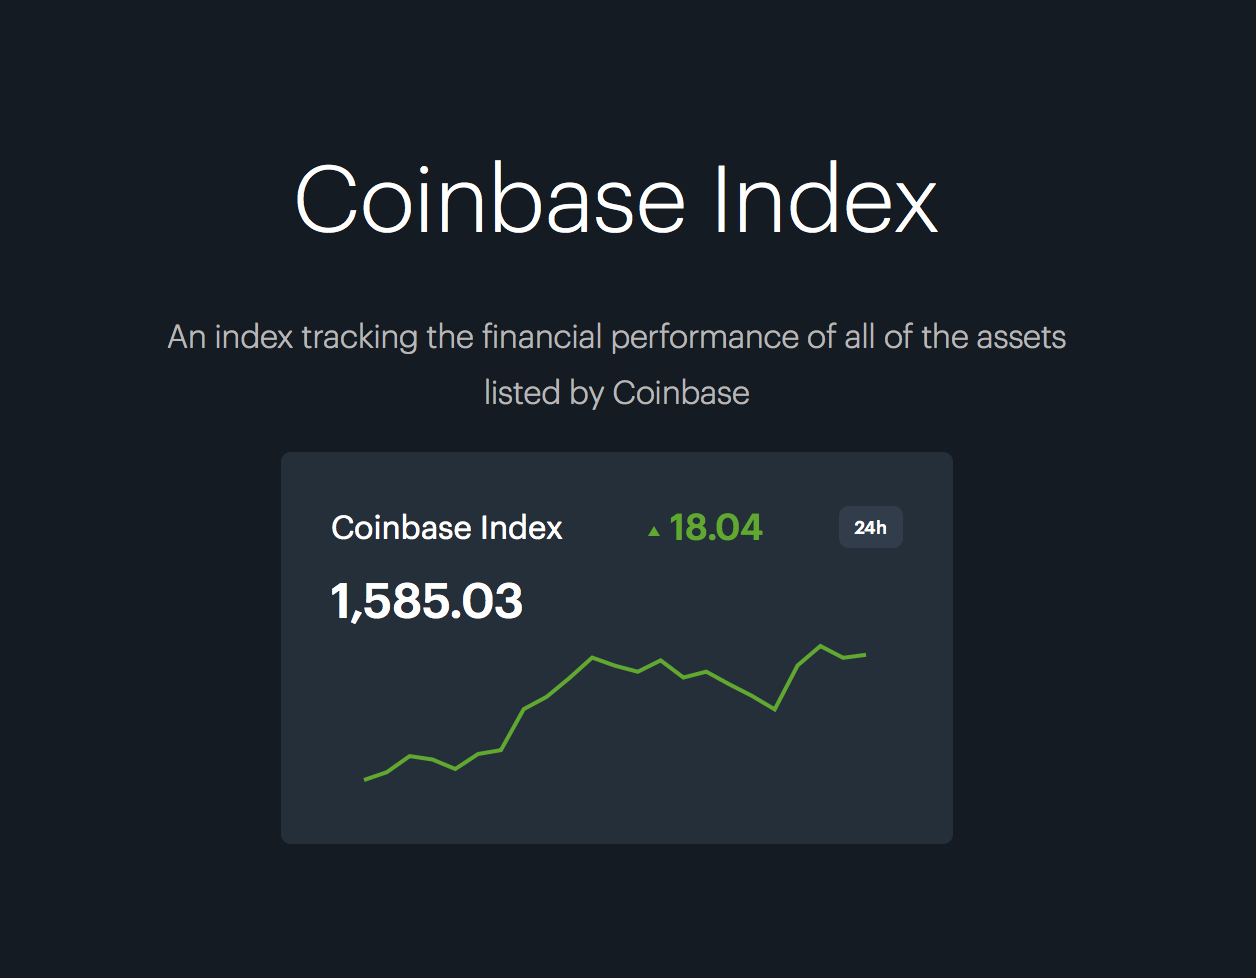 Coinbase Index